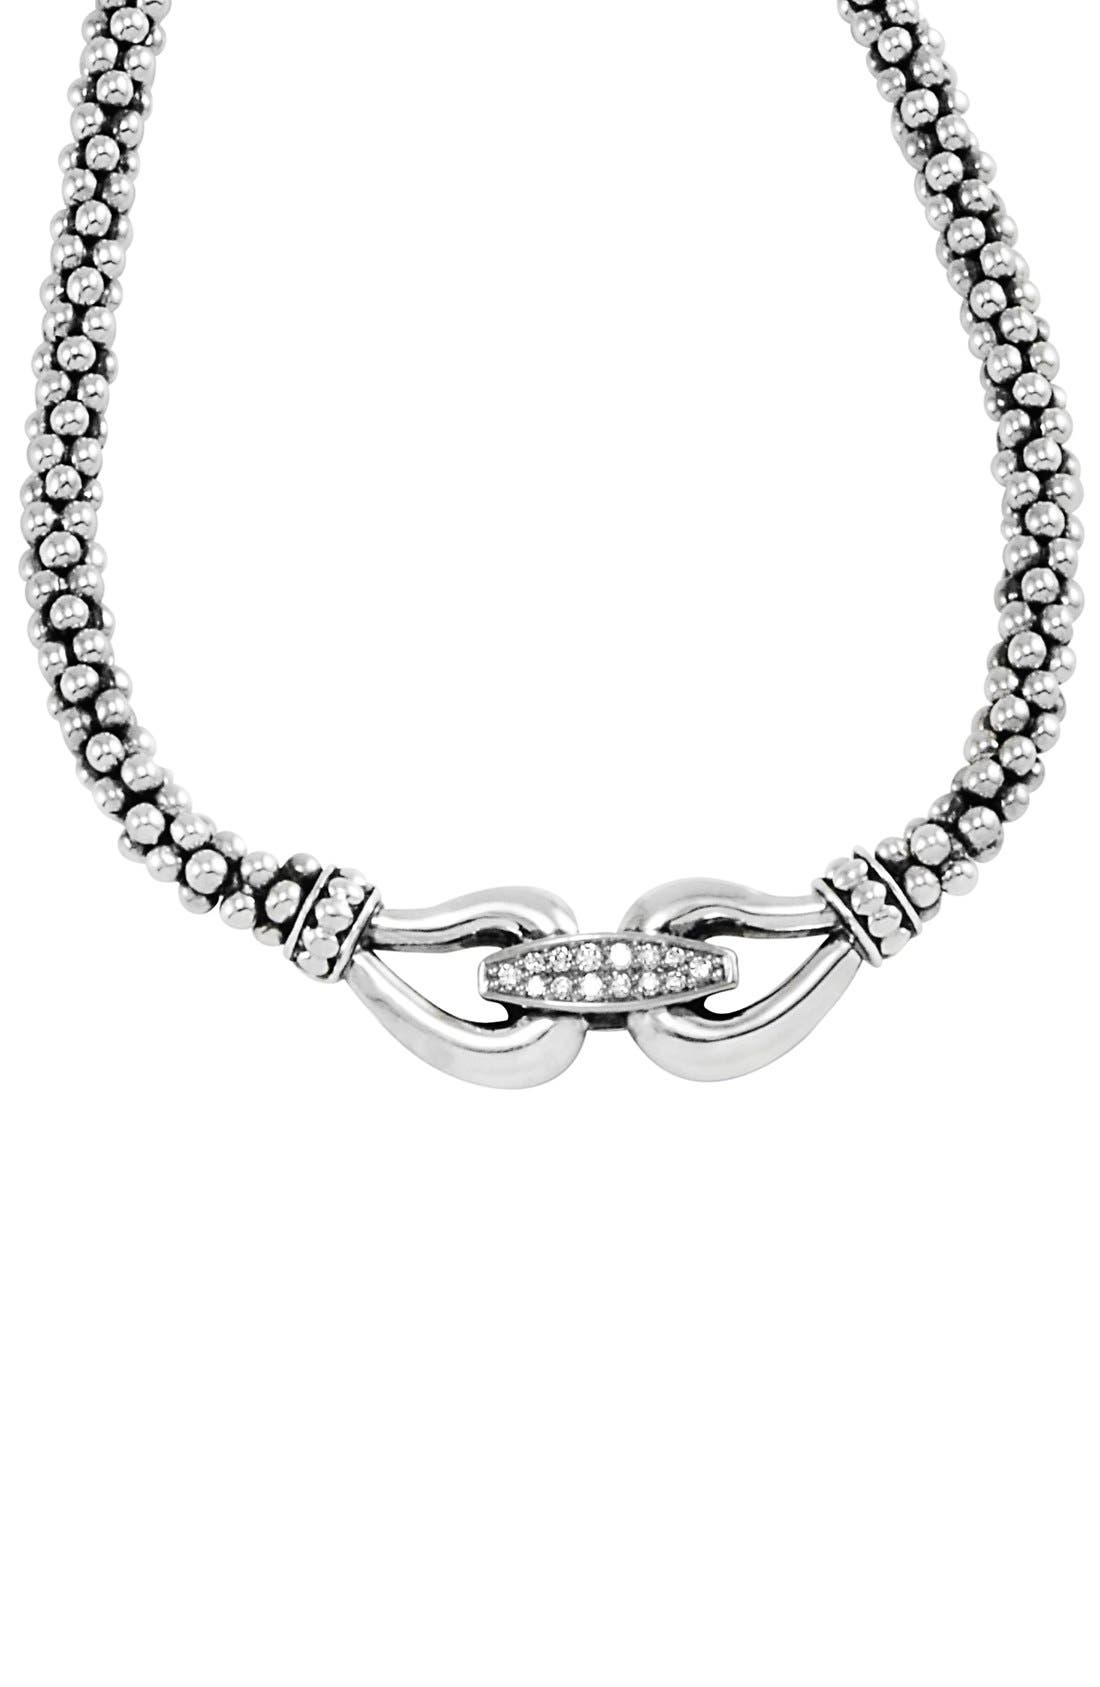 'Derby' Diamond Buckle Rope Necklace,                             Alternate thumbnail 3, color,                             SILVER/ GOLD